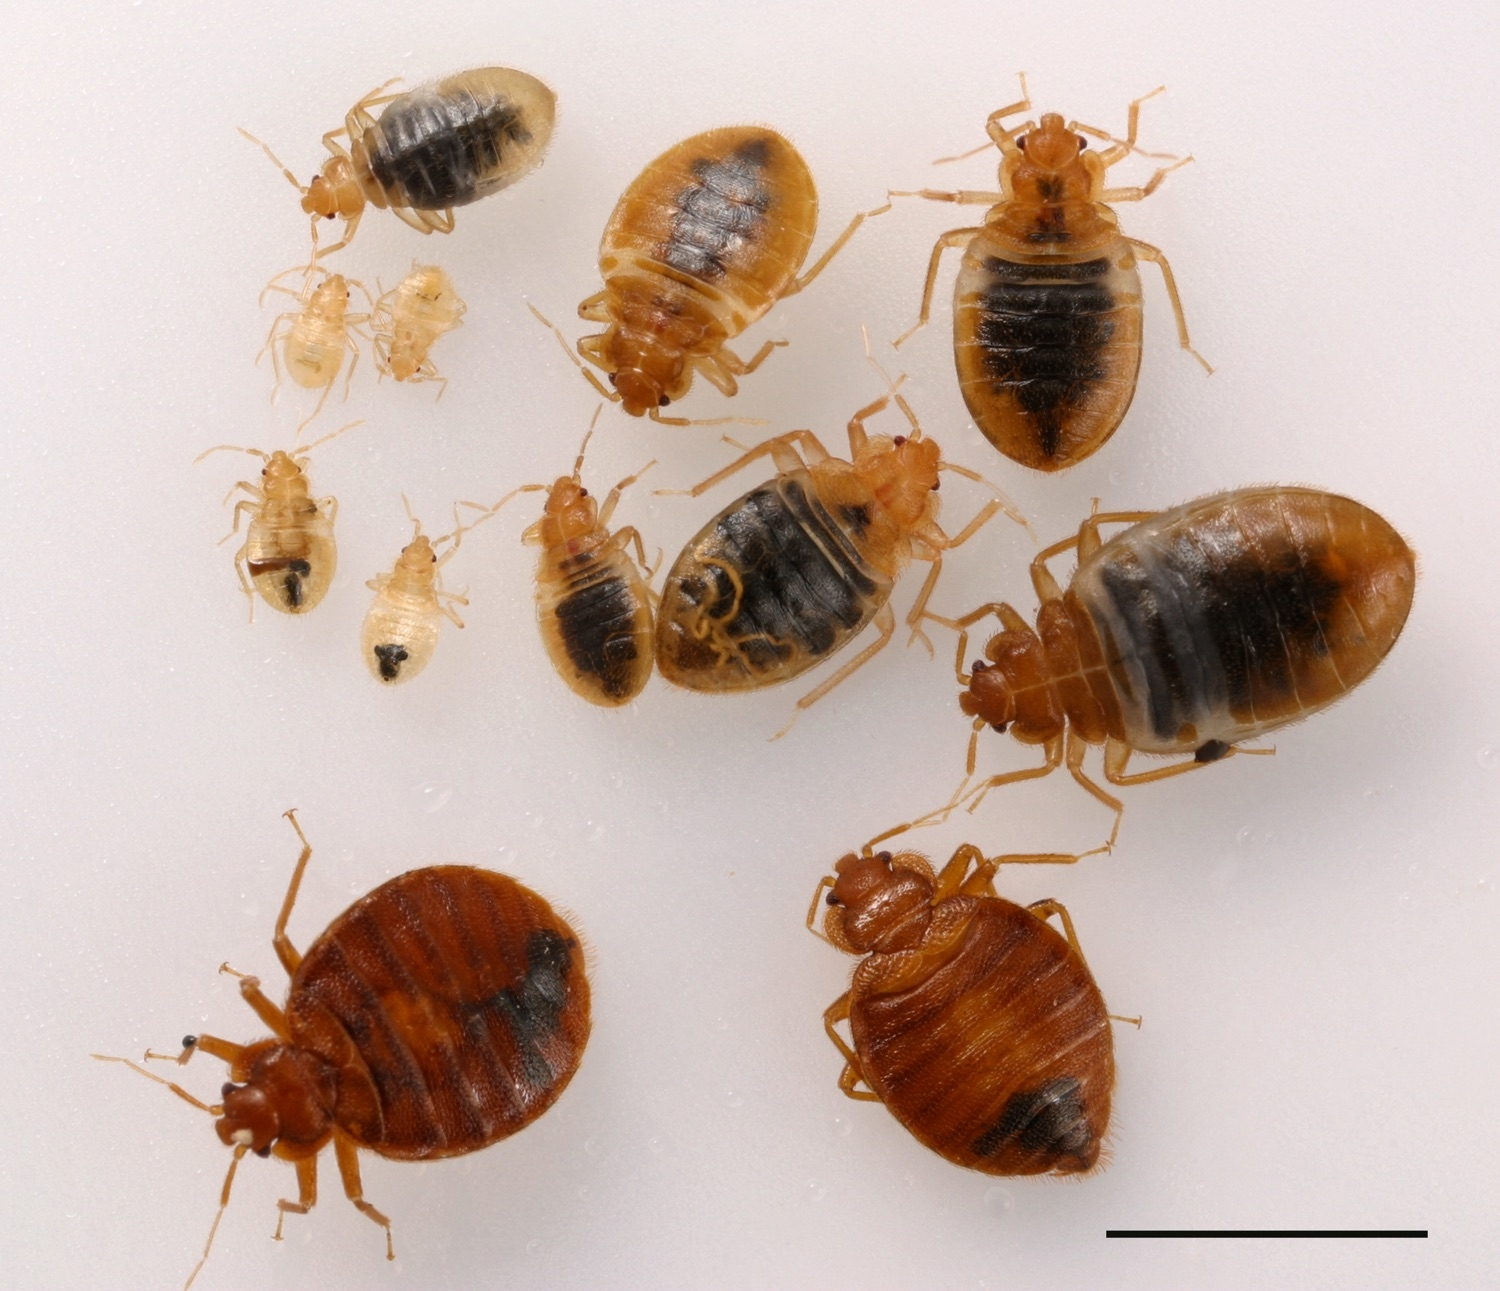 Images Of Bed Bugs Do It Yourself Bed Bug Control Pests In The Urban Landscape